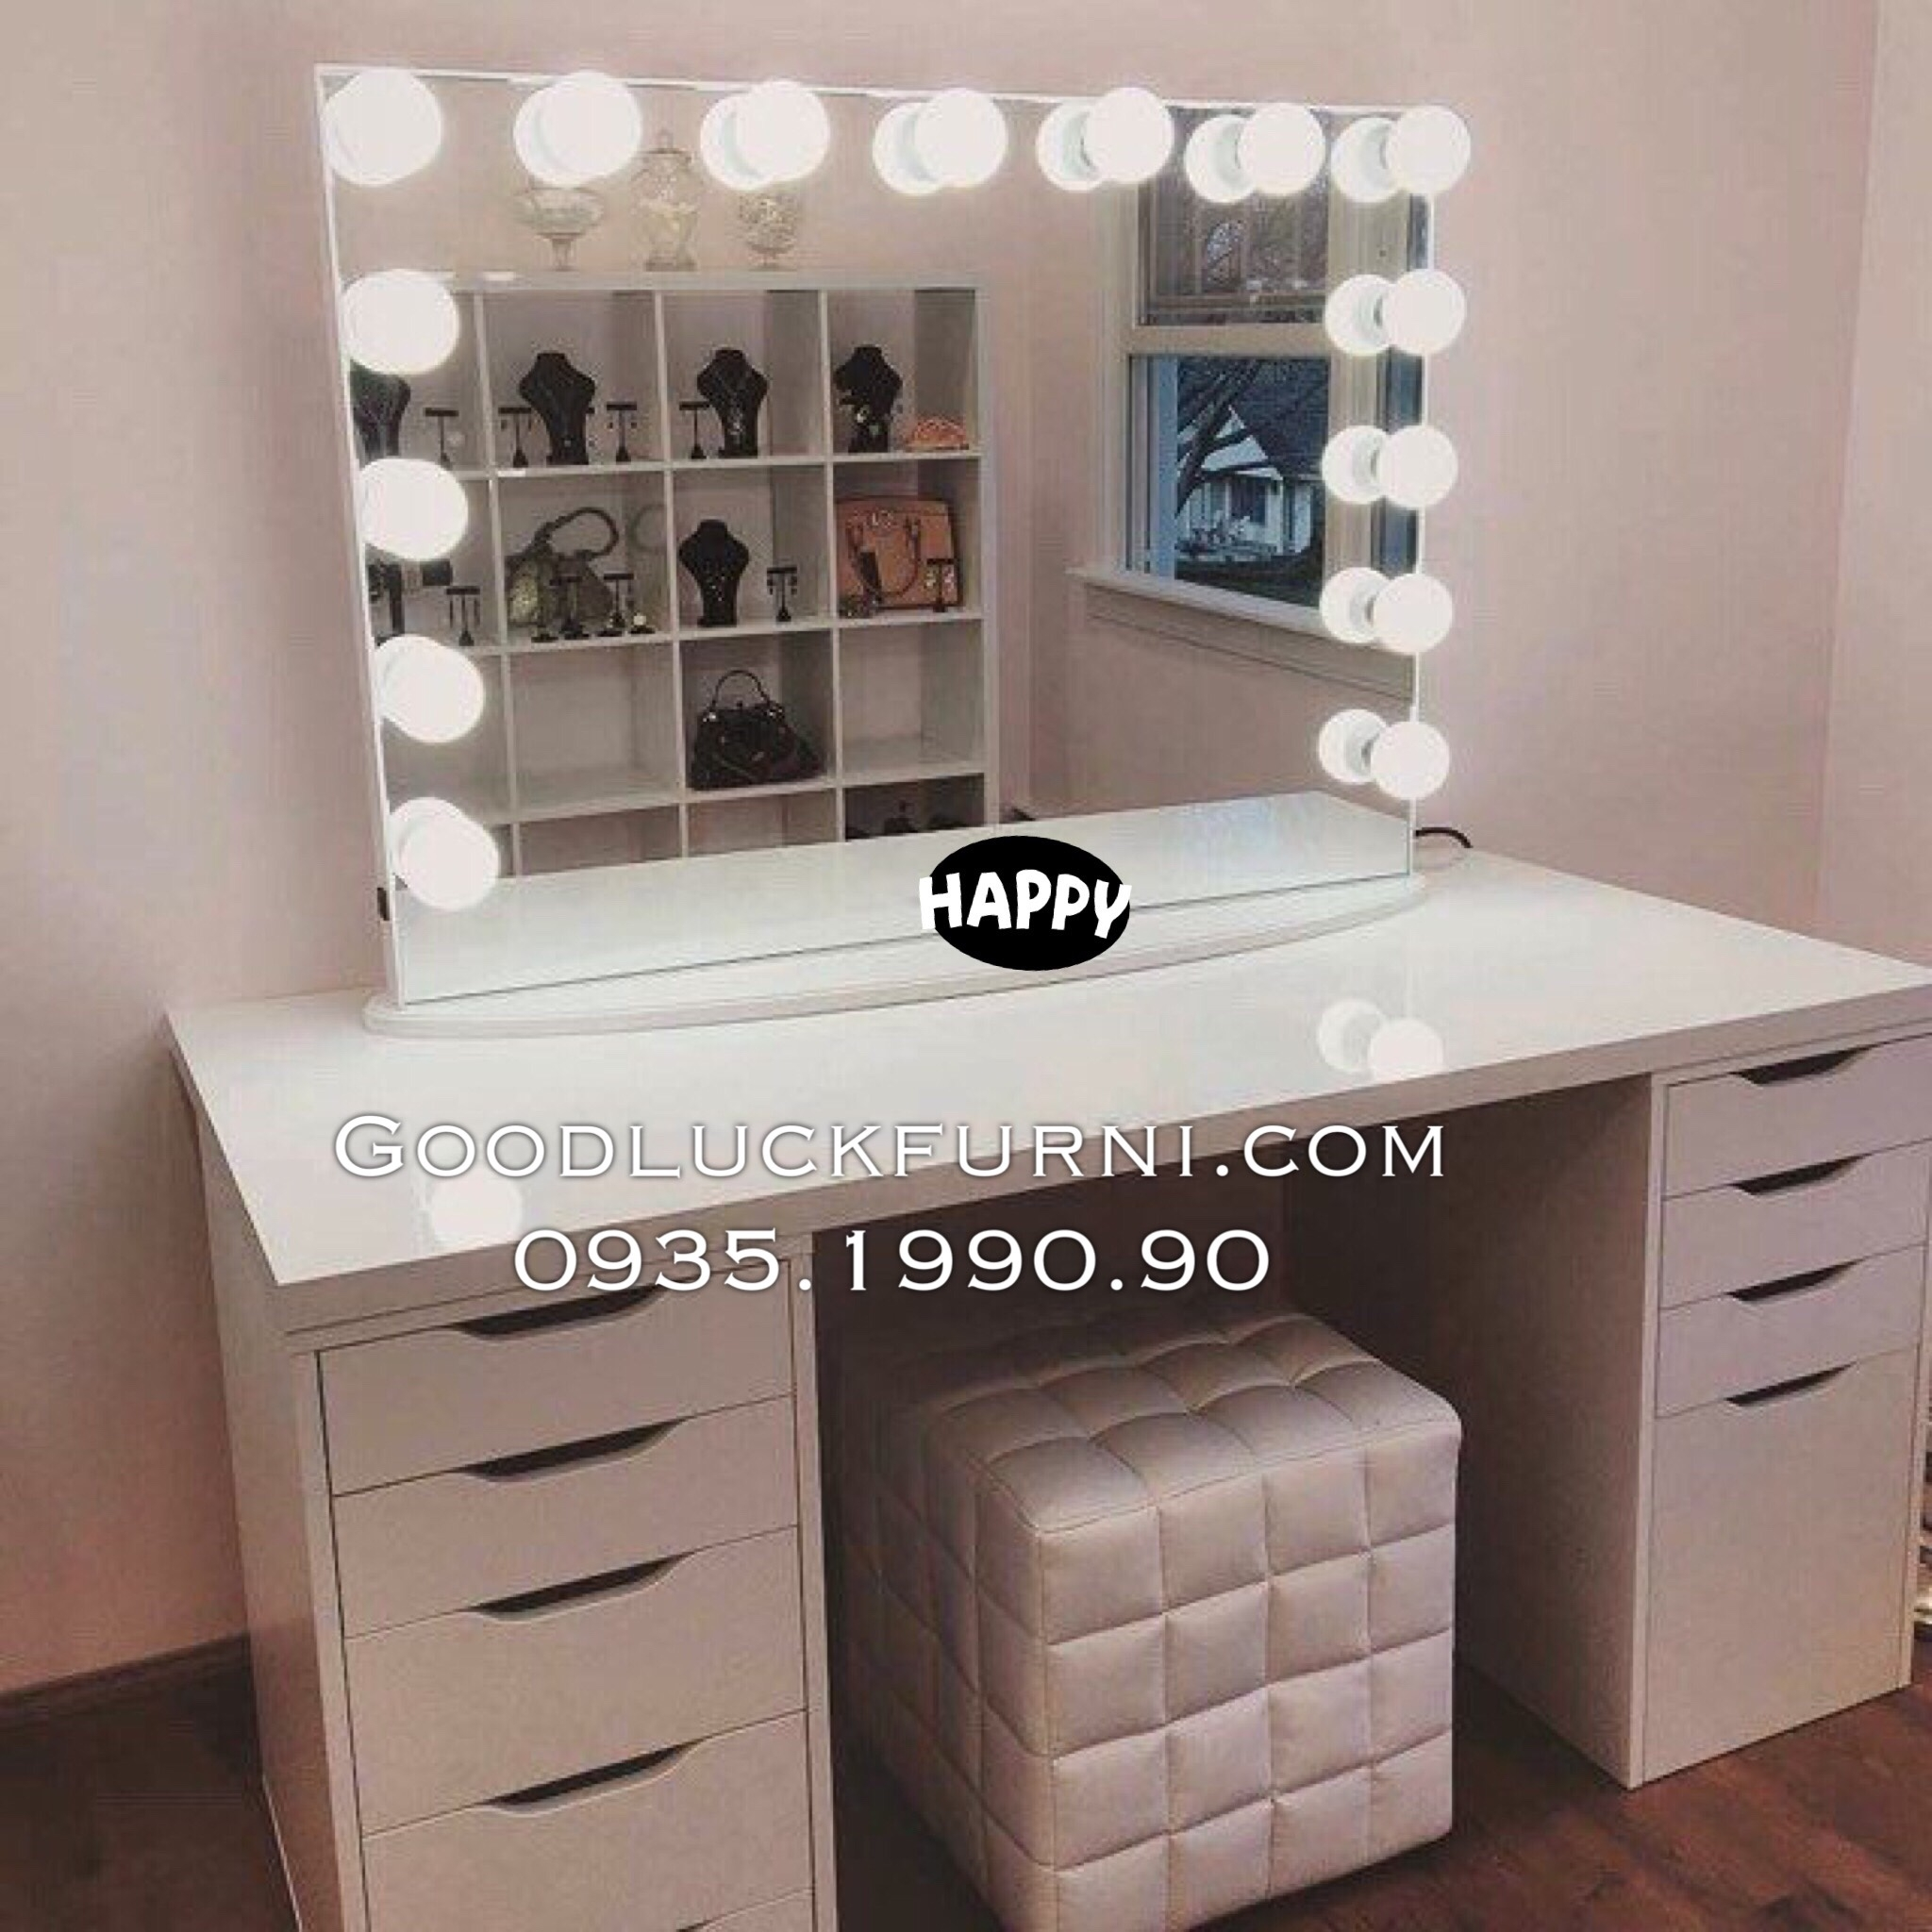 Vanity table Small Space 25 Best Ideas About Vanity Table Organization On Visual Hunt Makeup Vanity Table With Lighted Mirror Visual Hunt